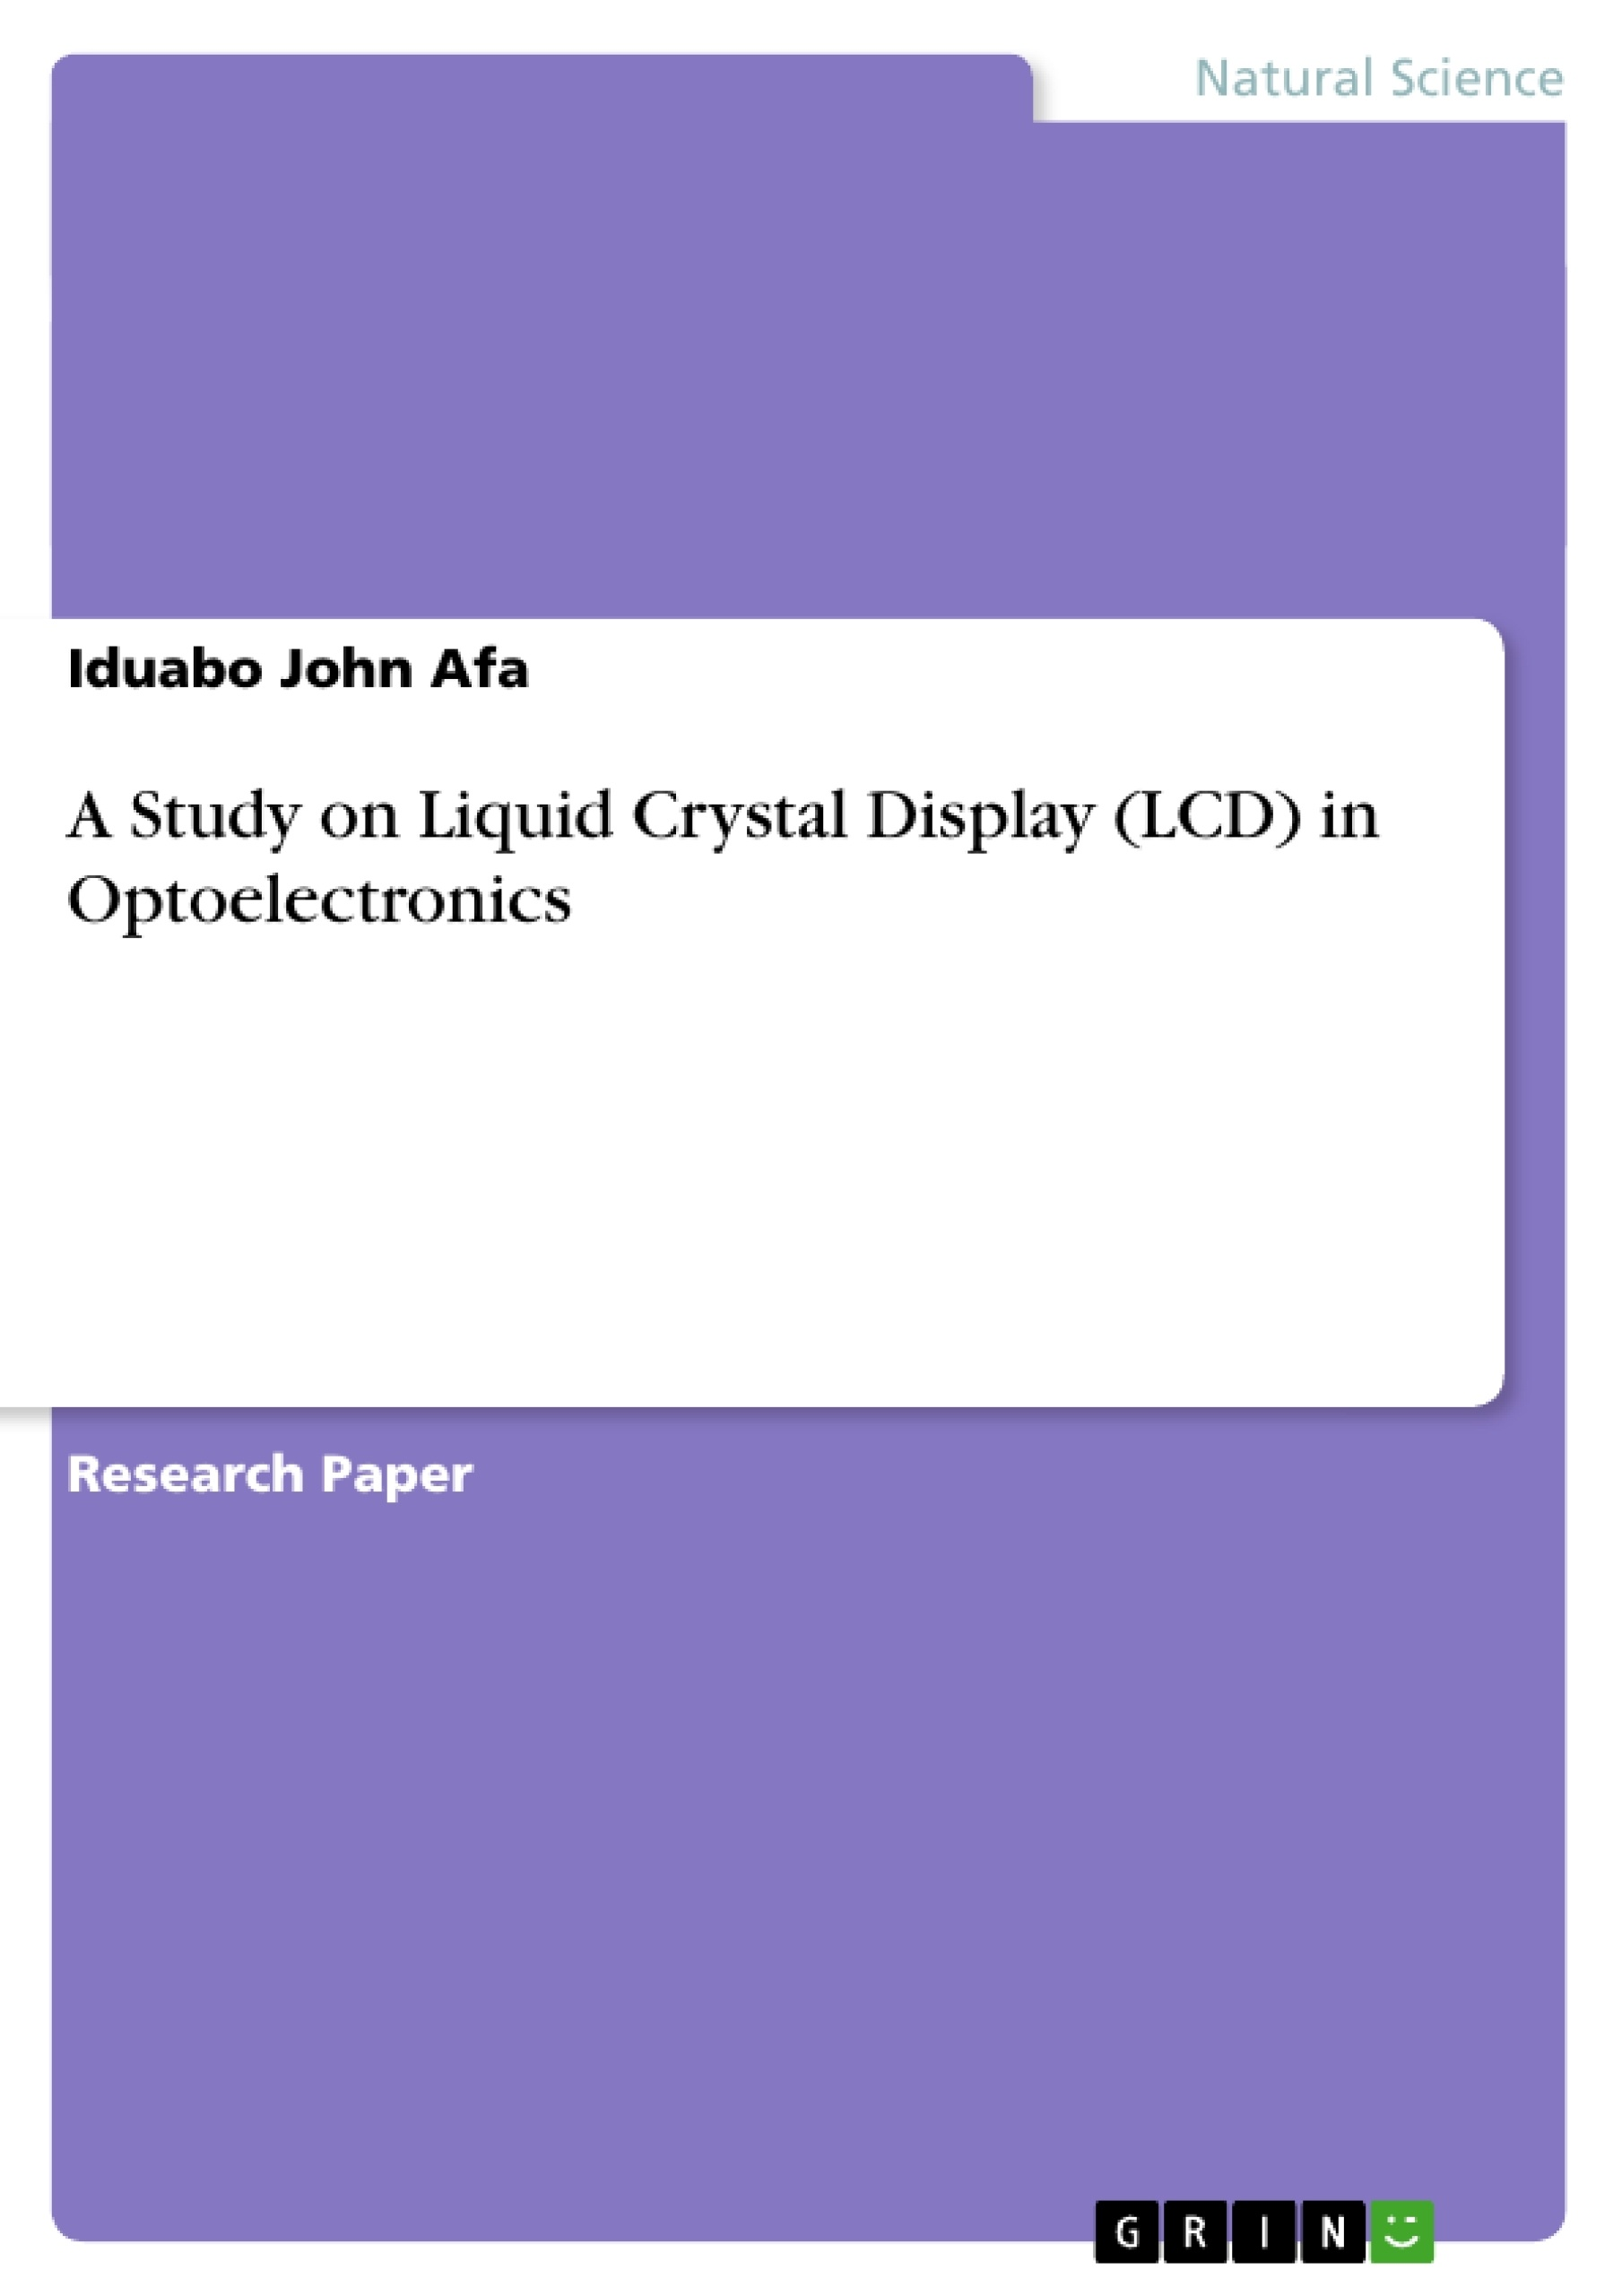 Title: A Study on Liquid Crystal Display (LCD) in Optoelectronics